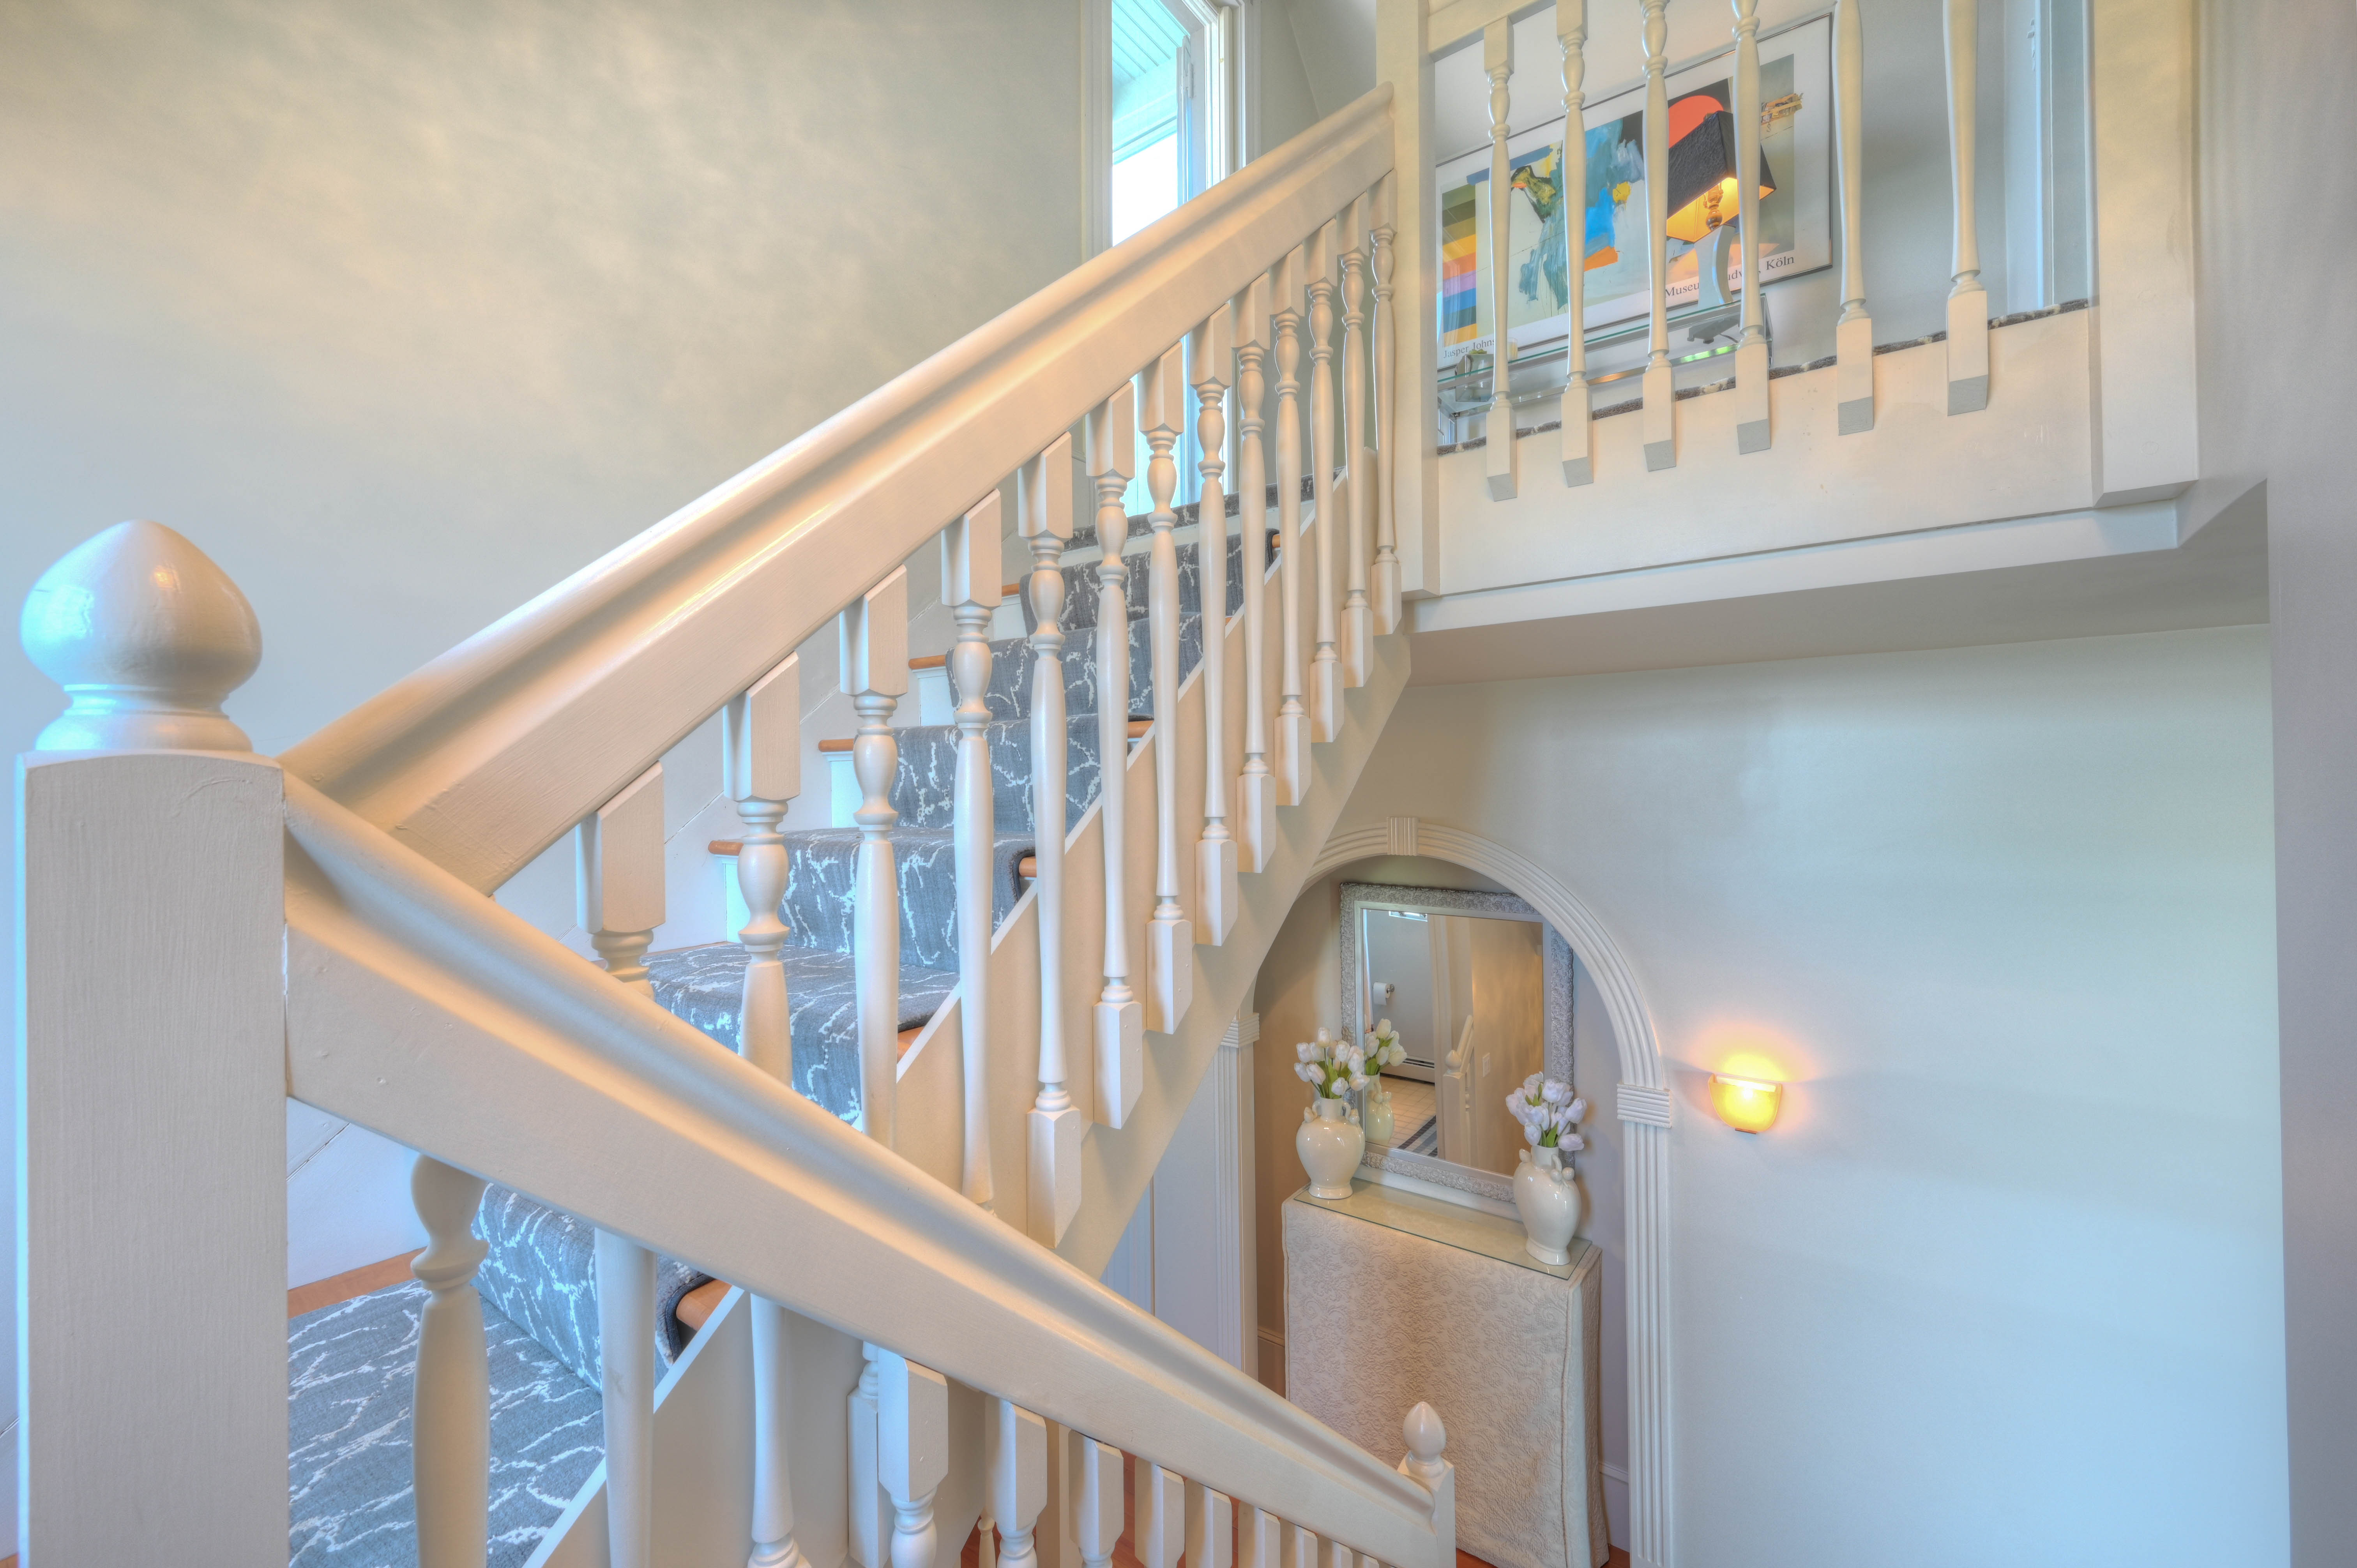 130-common-fence-portsmouth-ri-balusters